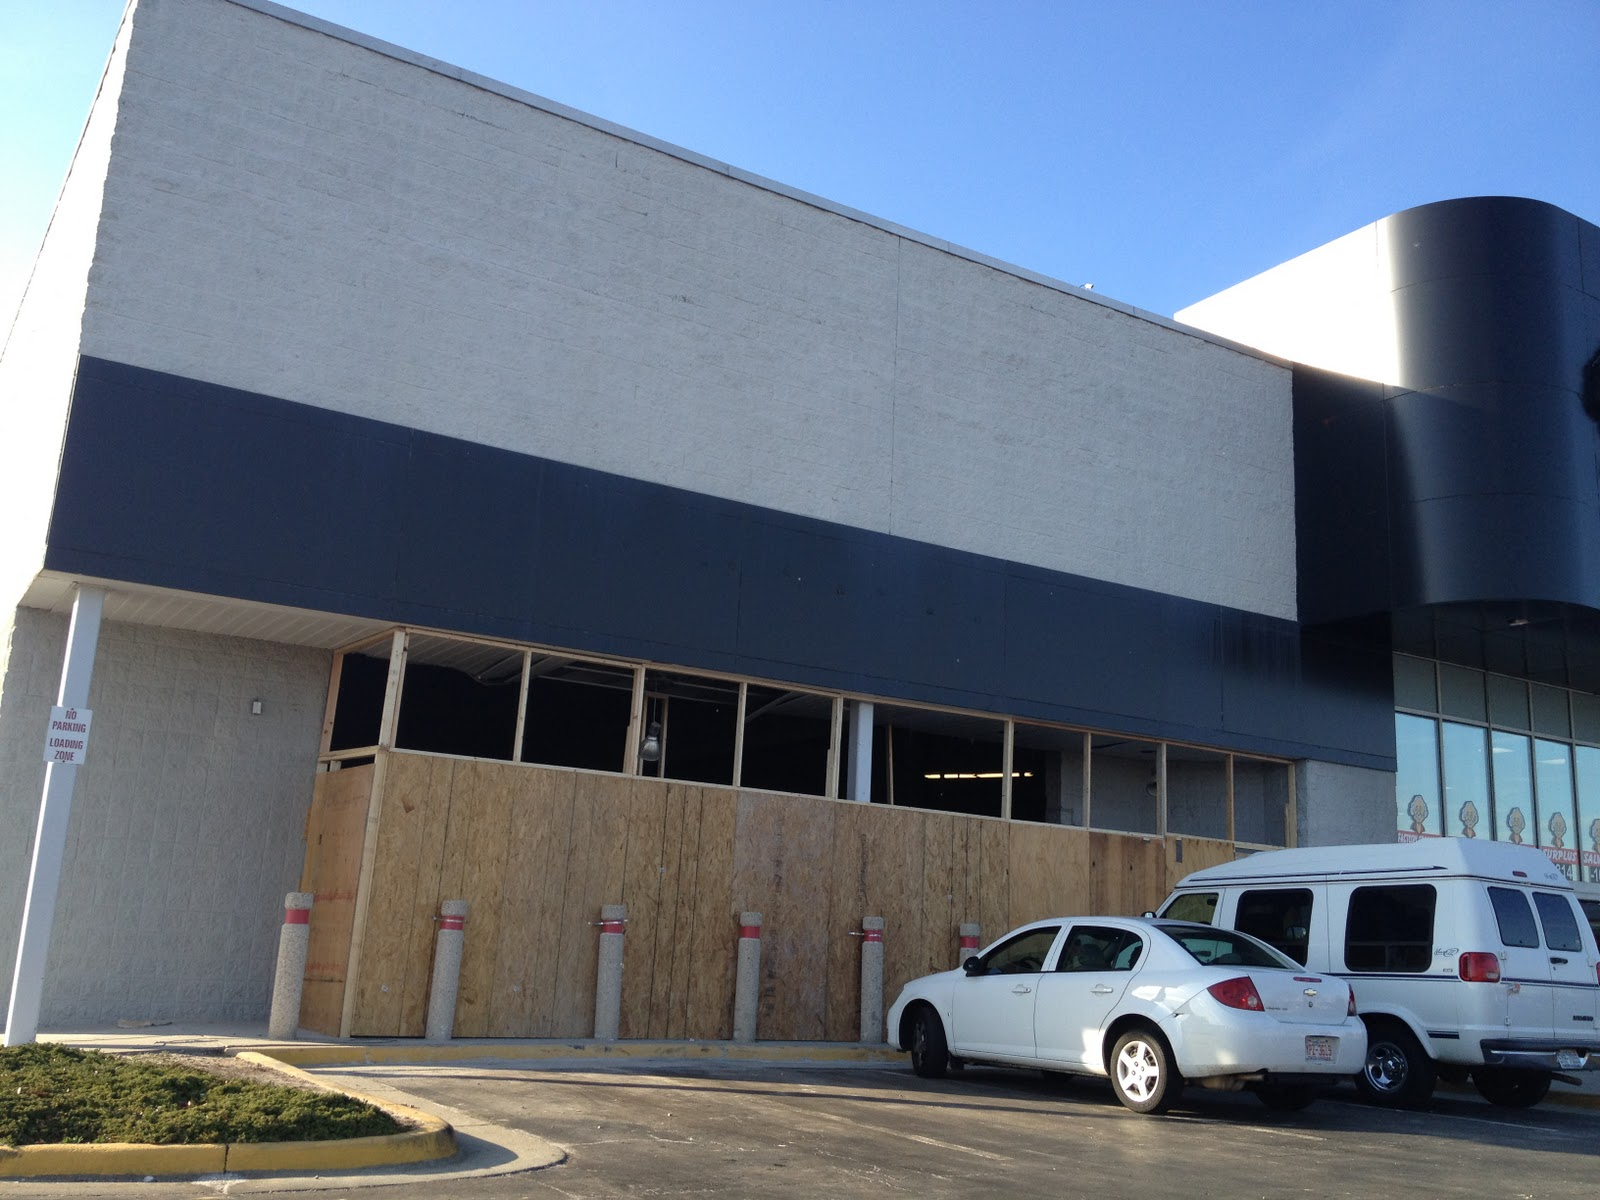 Dead and Dying retail: Ollie's Bargain Outlet in Greensboro